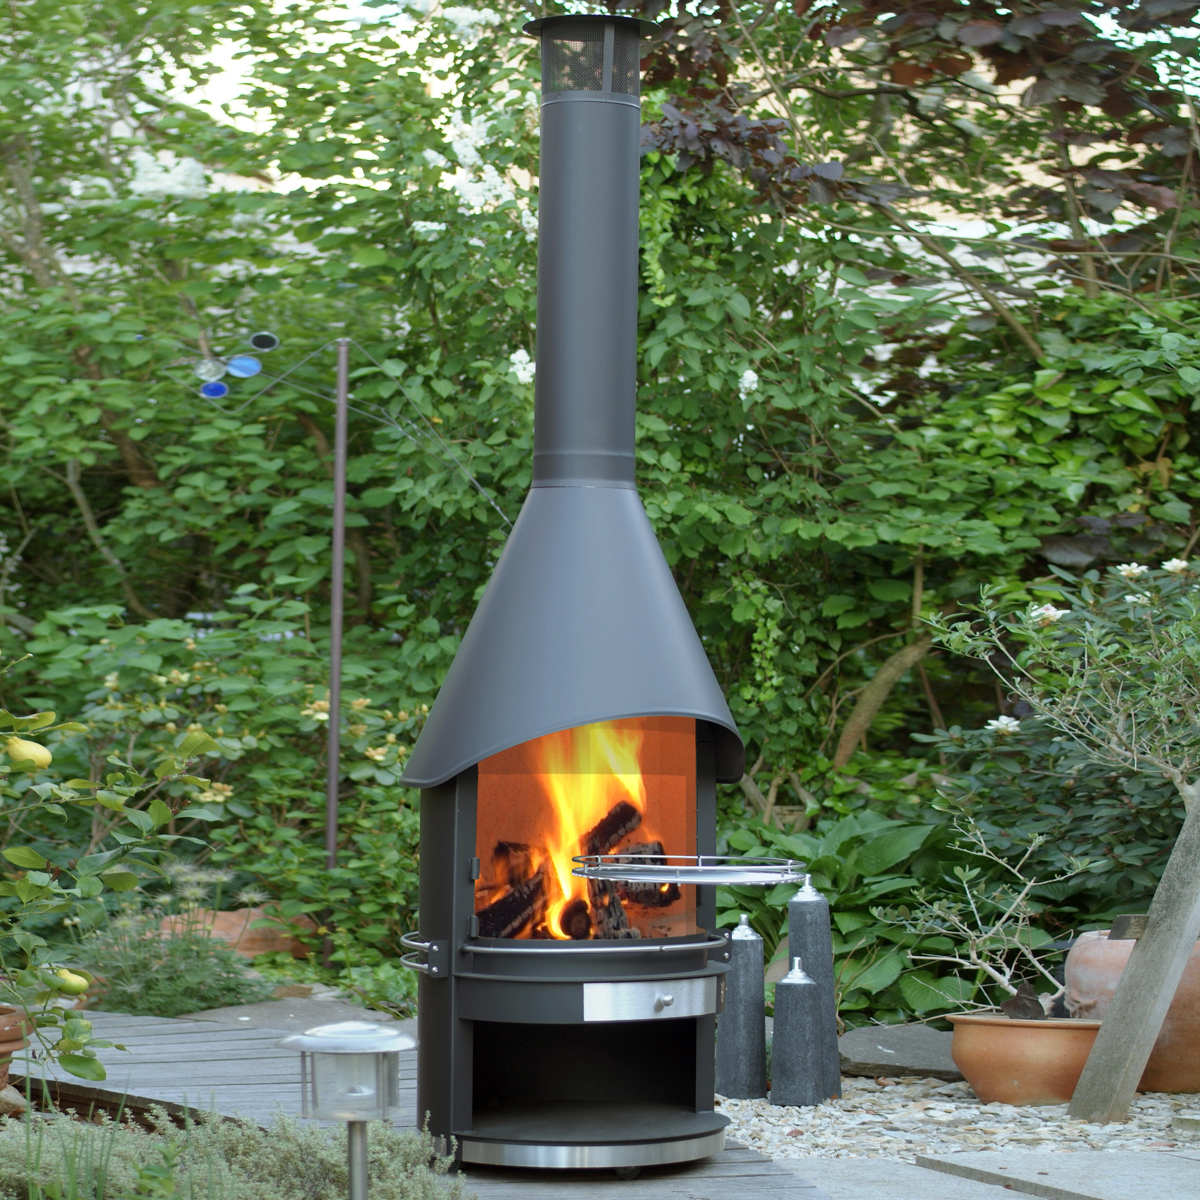 girse-duo-outdoor-fireplace-barbeque